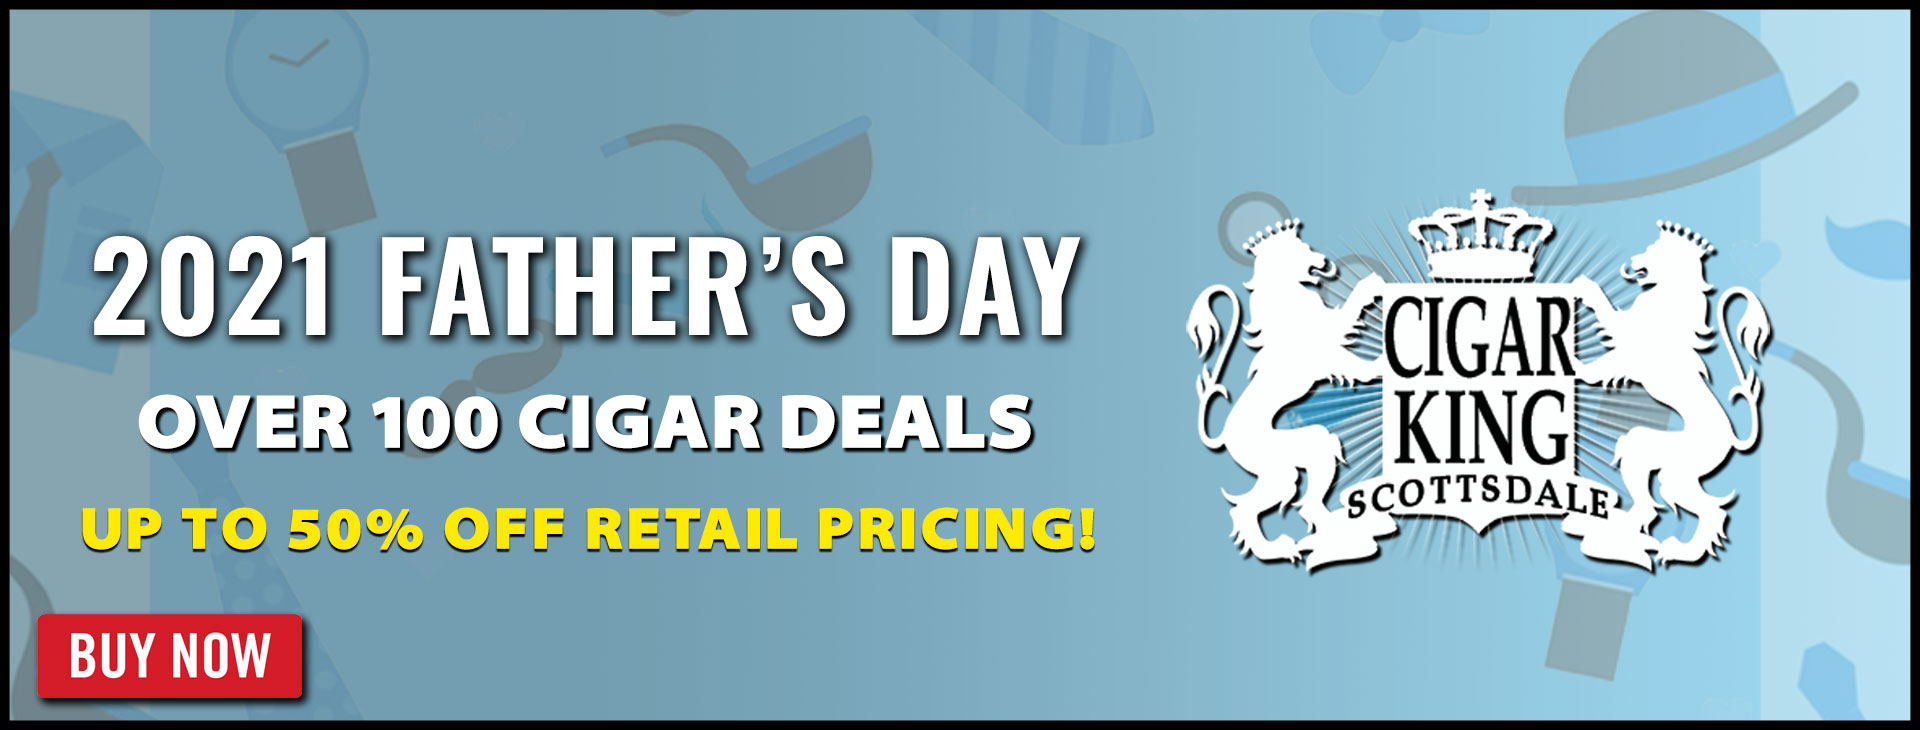 fathers-day-2021-banner.jpg